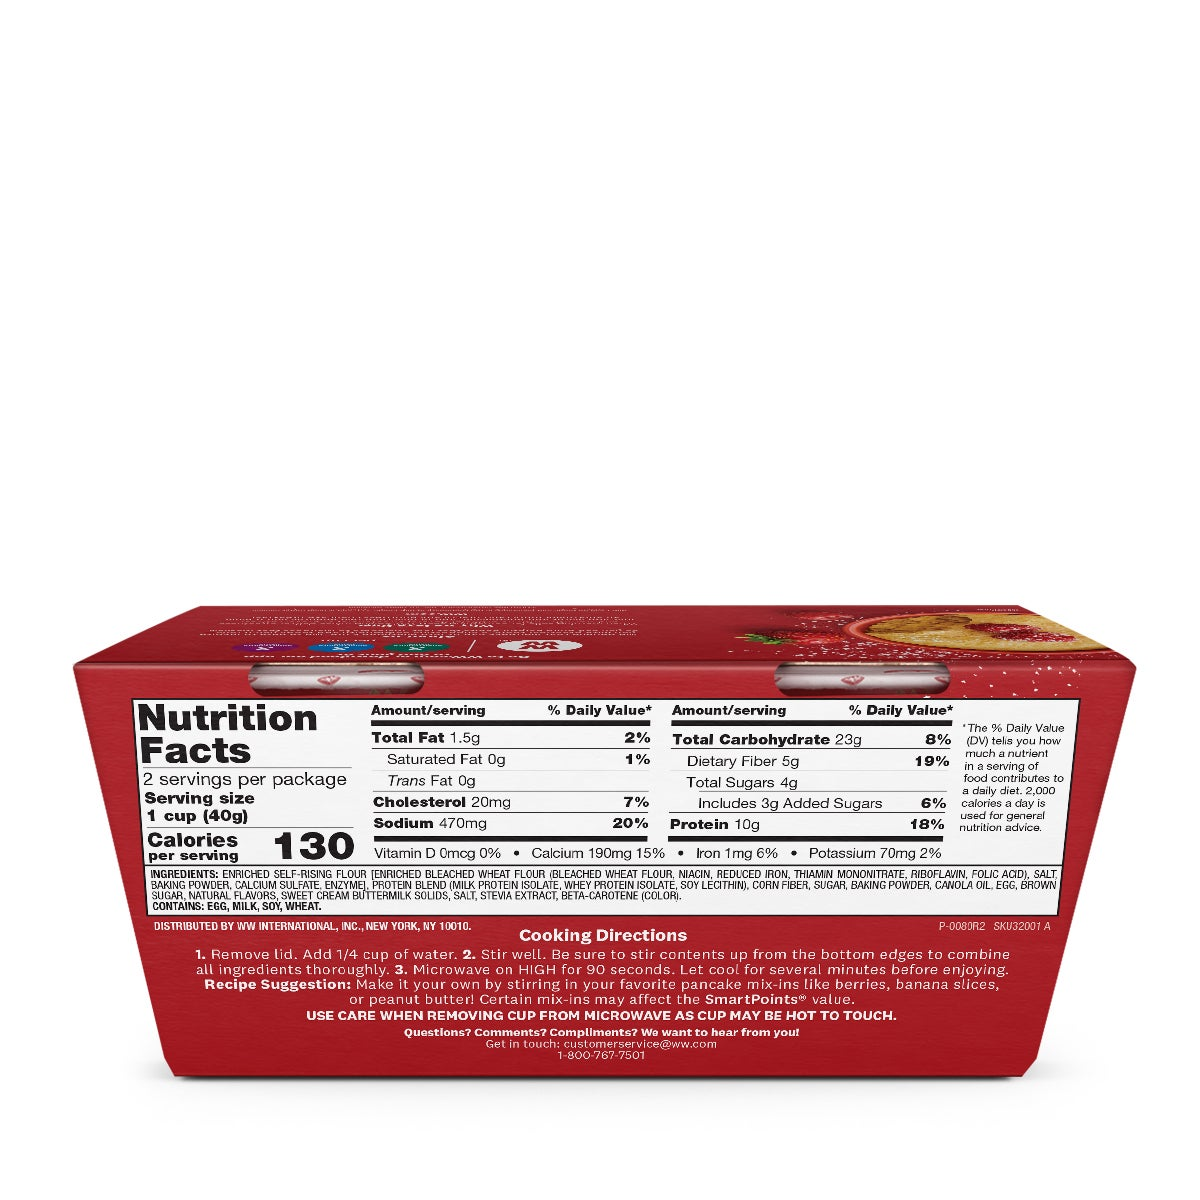 Buttermilk Protein Pancake Mix - back of box